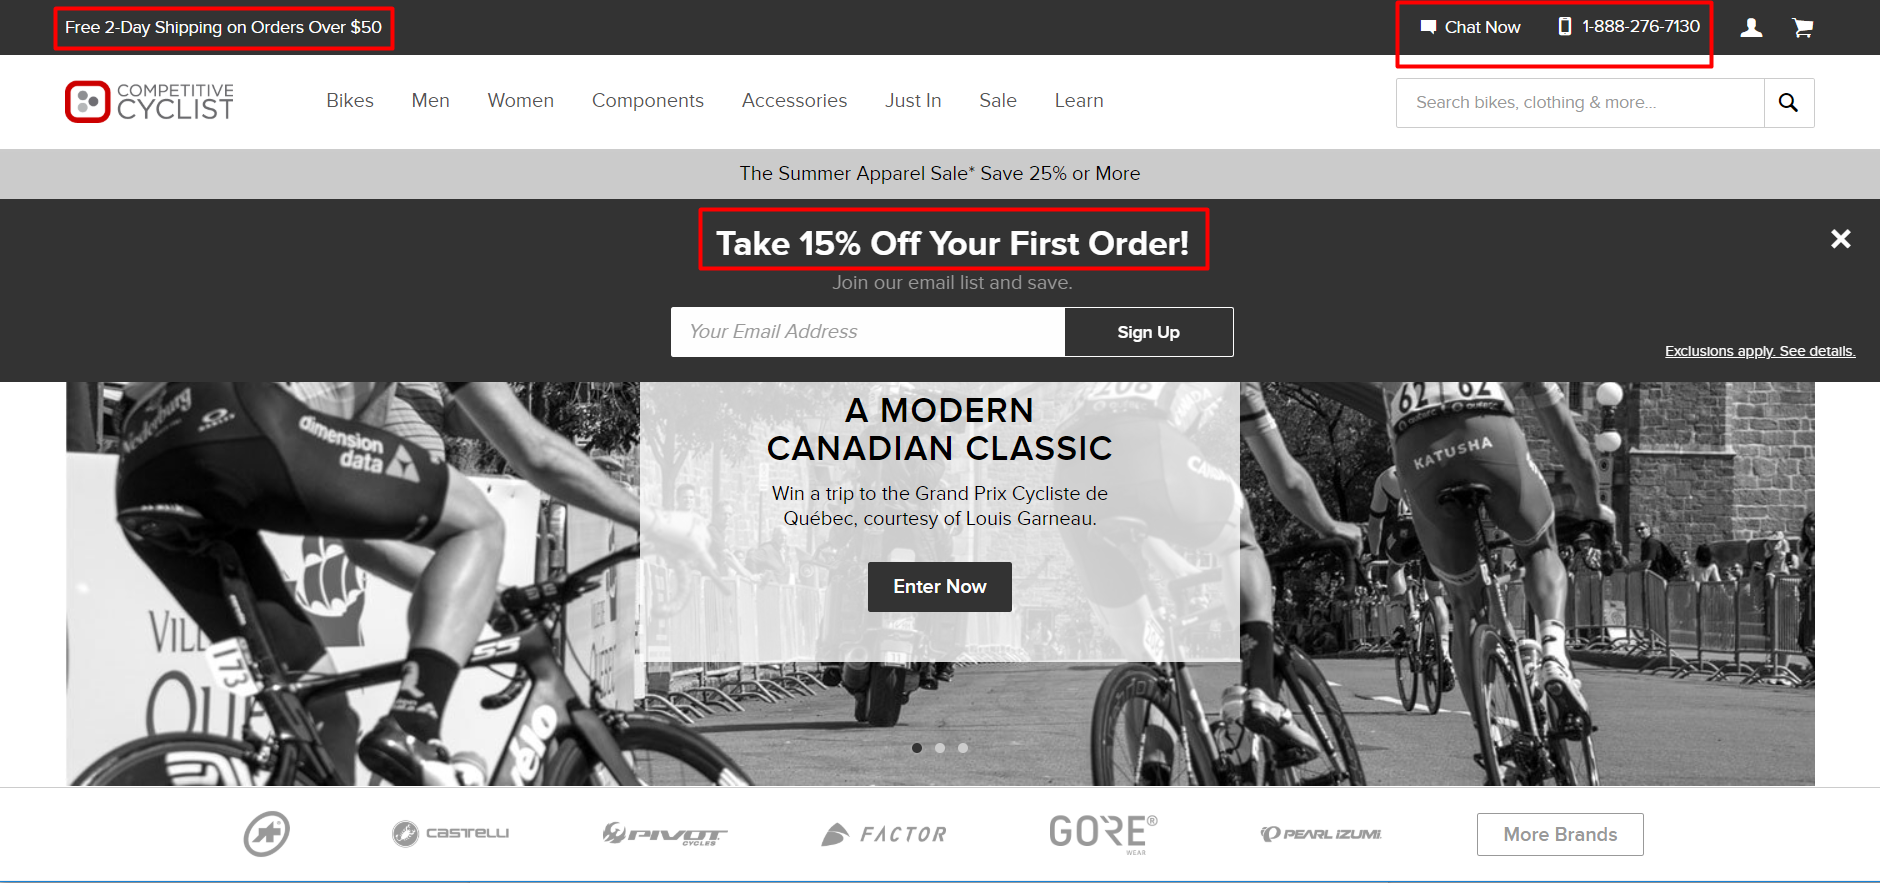 Competitive Cyclist offers a discount off of the first order.